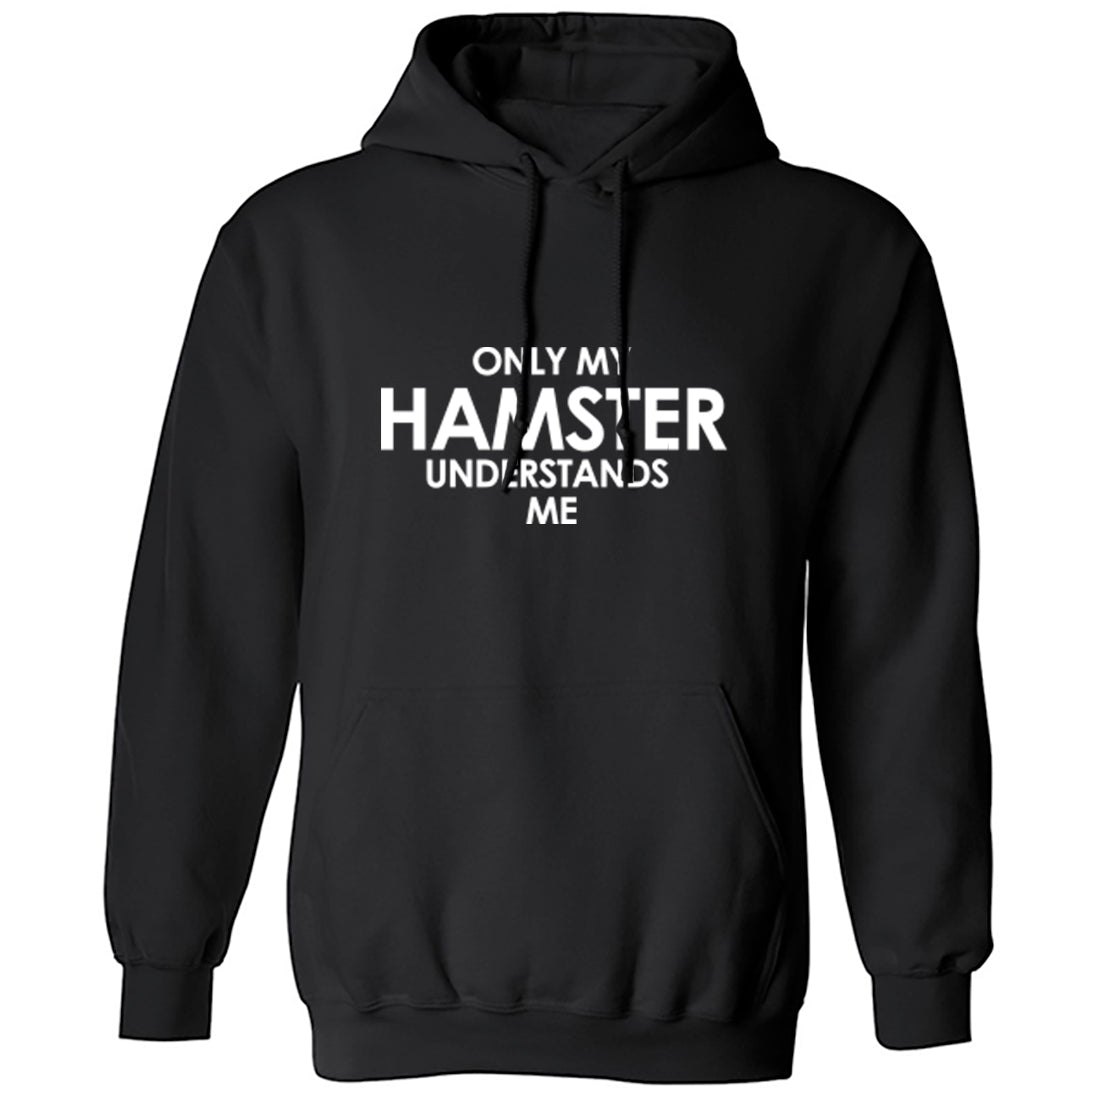 Only My Hamster Understands Me Unisex Hoodie K1558 - Illustrated Identity Ltd.